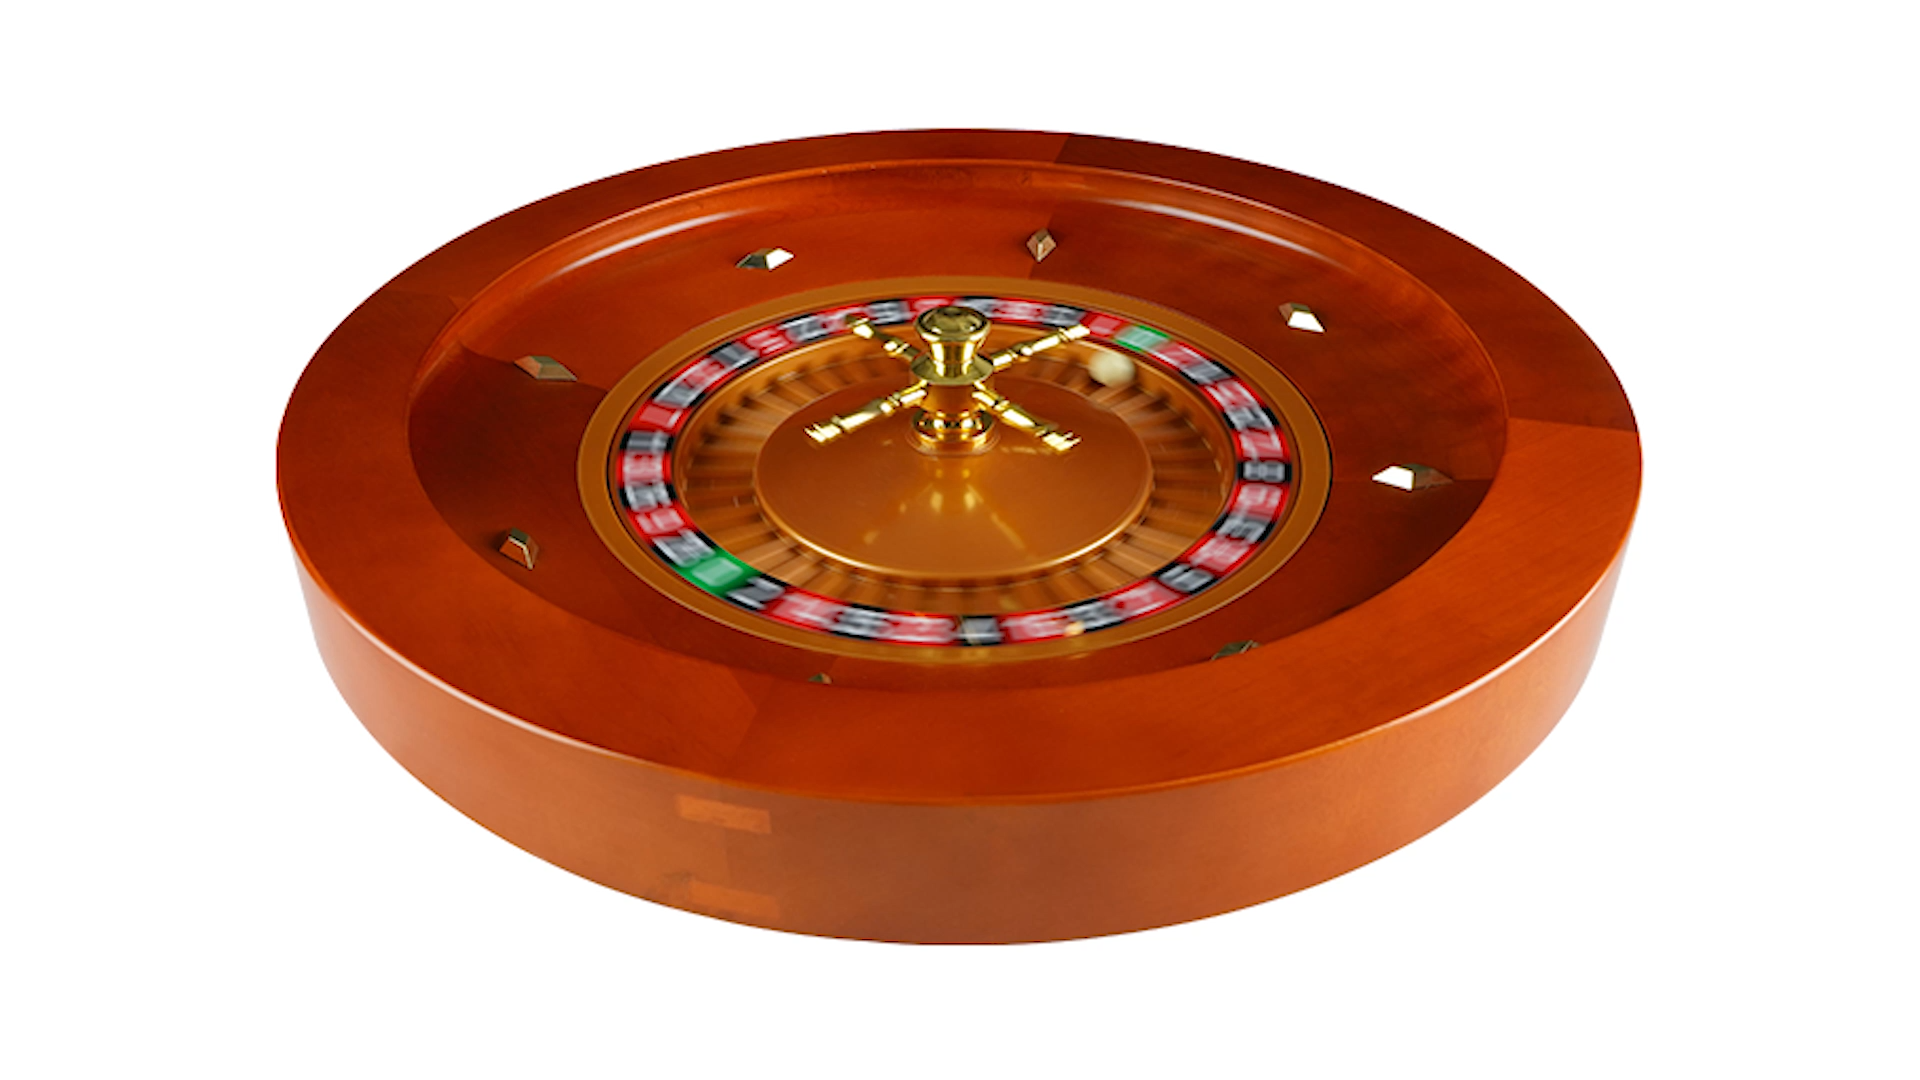 Yh 18 Inch Cheap Price High Quality Factory Wood Roulette Wheels 00 Casino Roulette Tables Buy Casino Roulette Tables Factory Roulette Wheel Roulette Wheel 00 Product On Alibaba Com